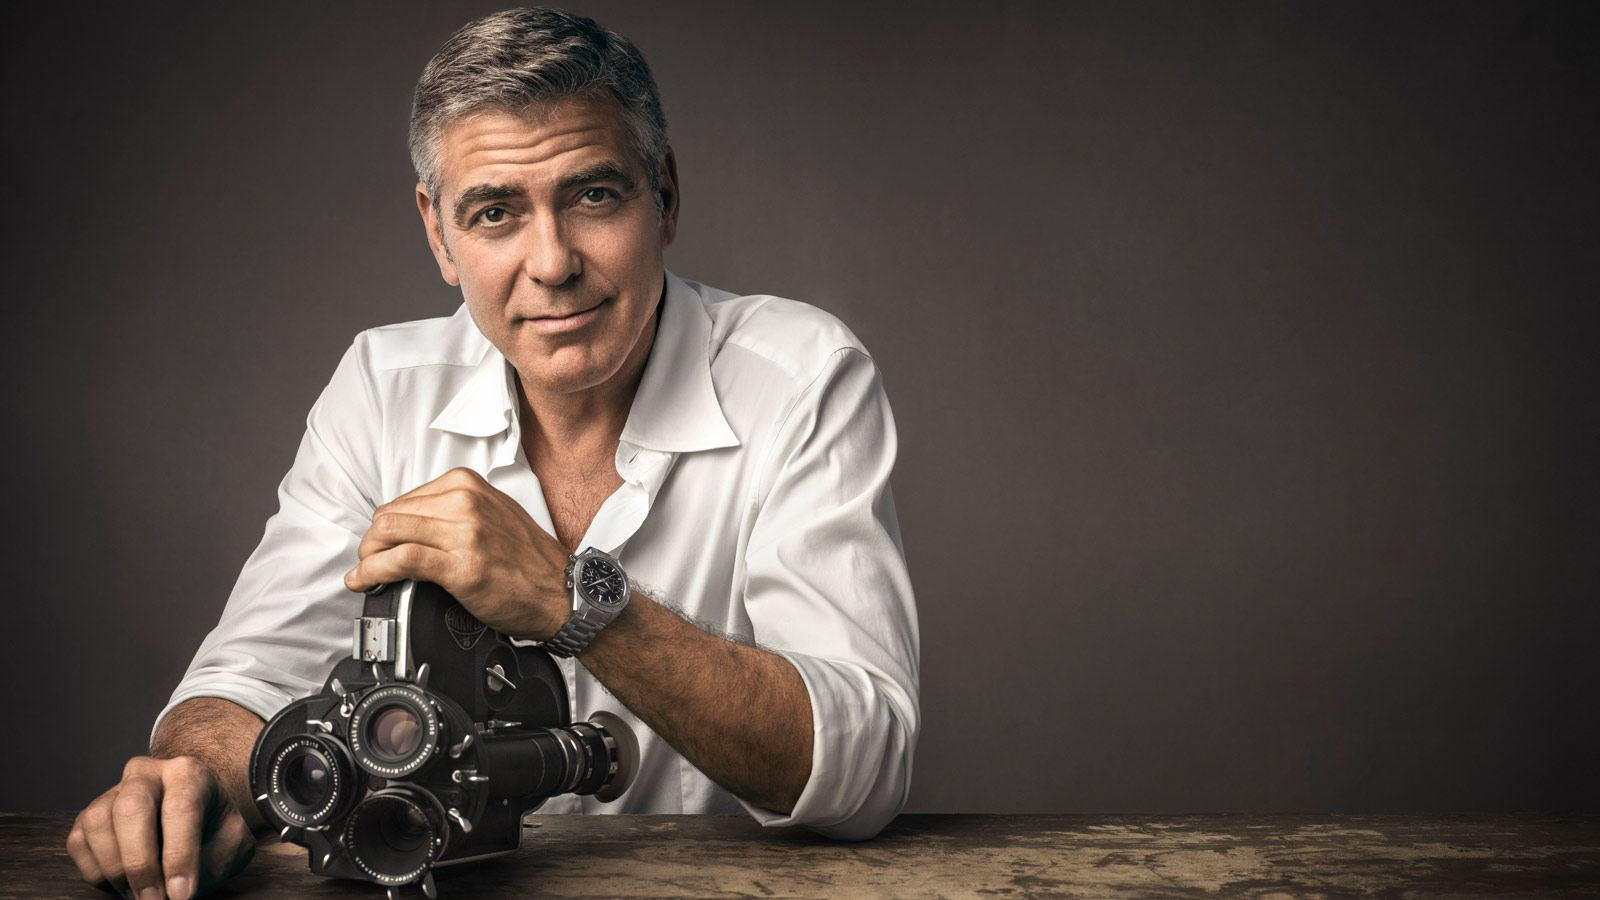 Pub Wallpaper 57 Images: George Clooney - Omega Watches